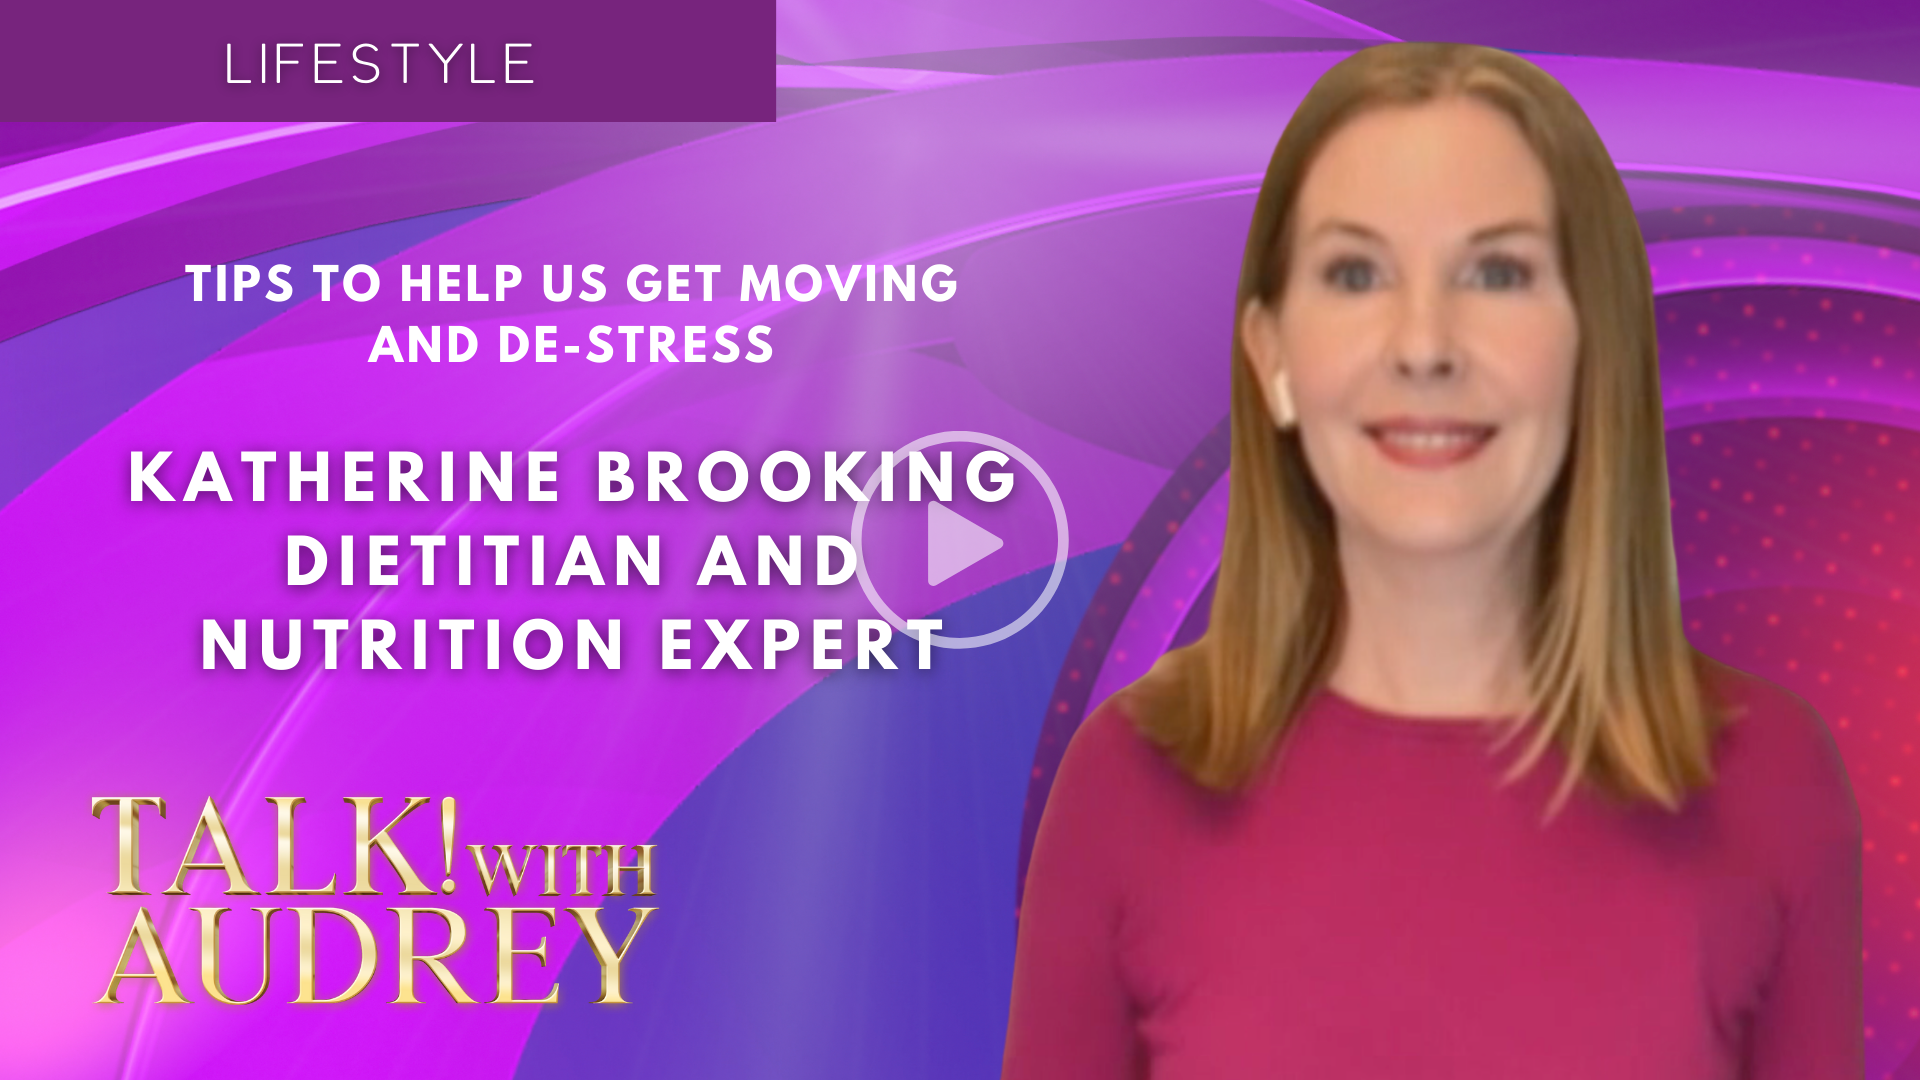 Katherine Brooking – Tips to Help Us Get Moving and De-stress